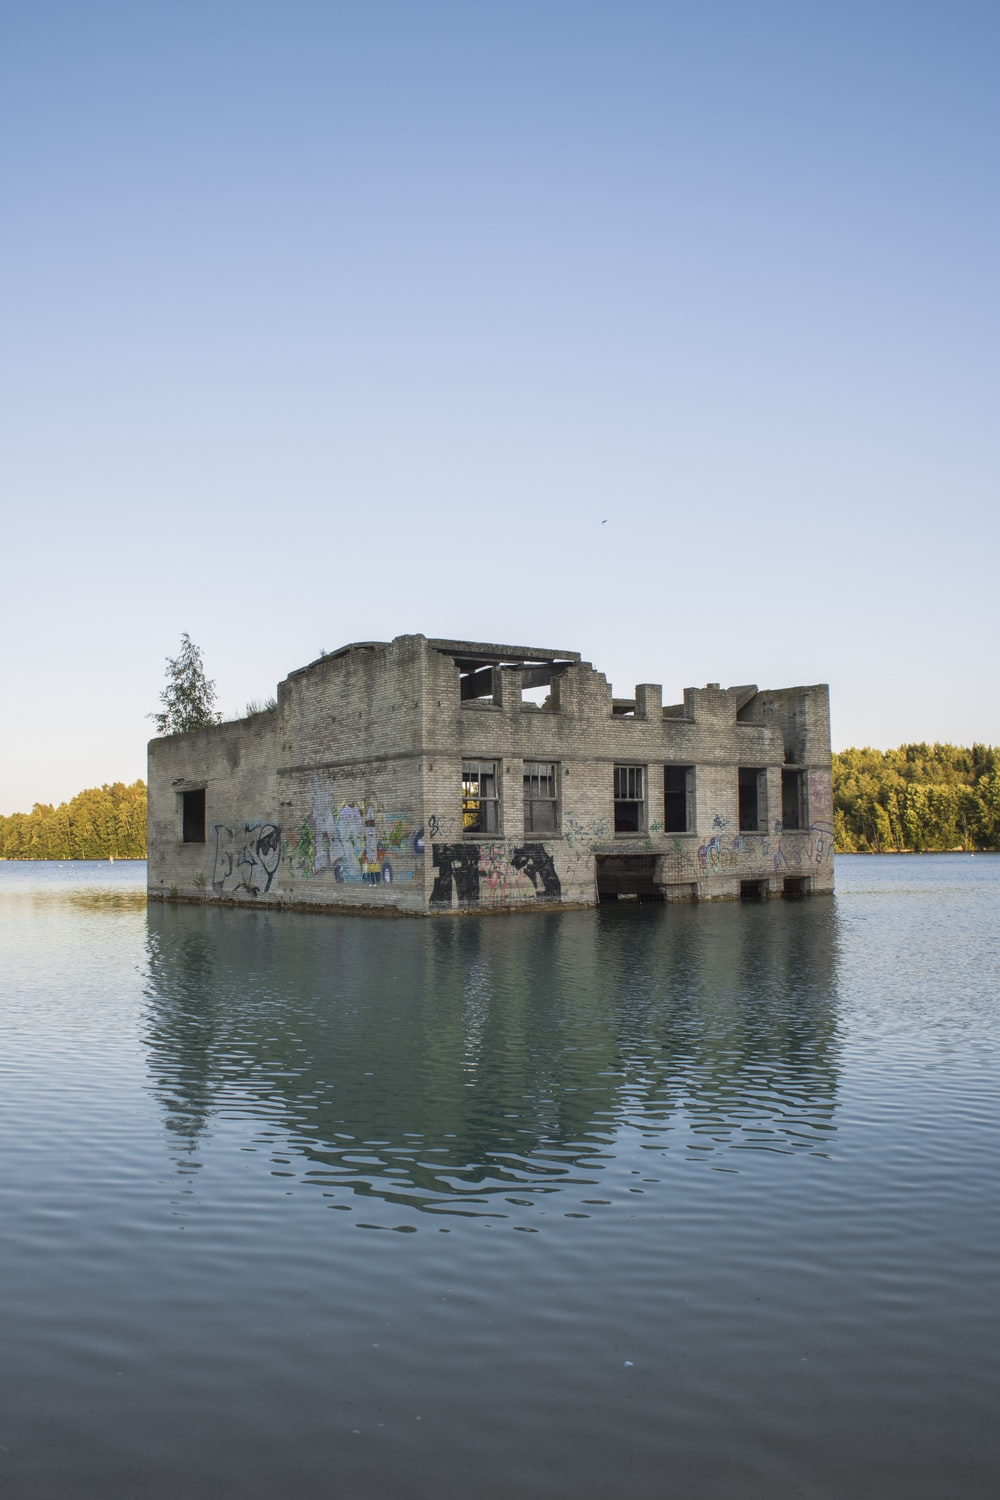 grey house ruins submerged in water under clear blue sky